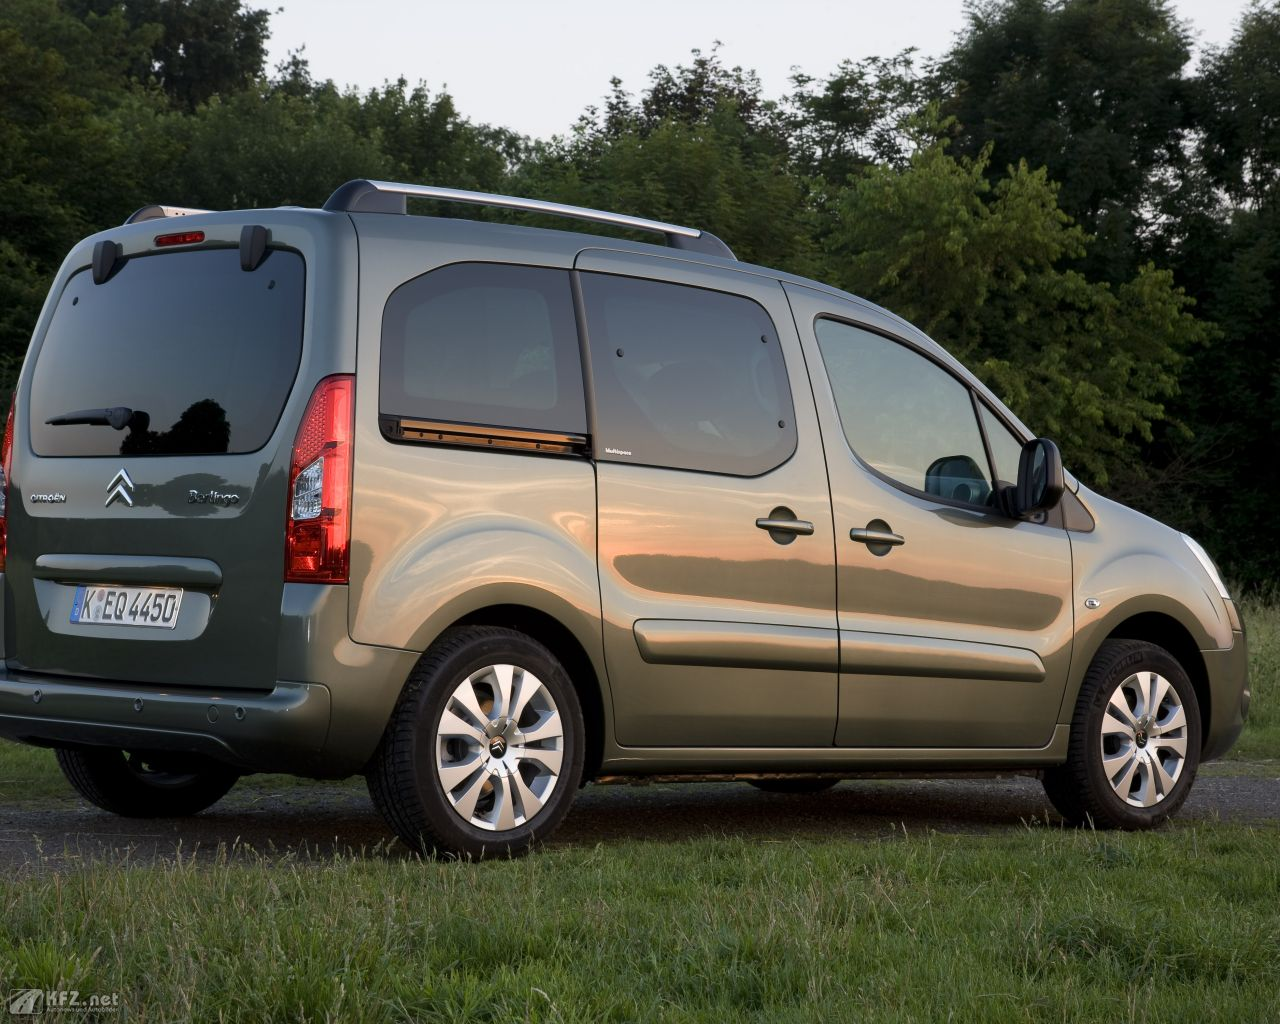 citroen-berlingo-1280x1024-171